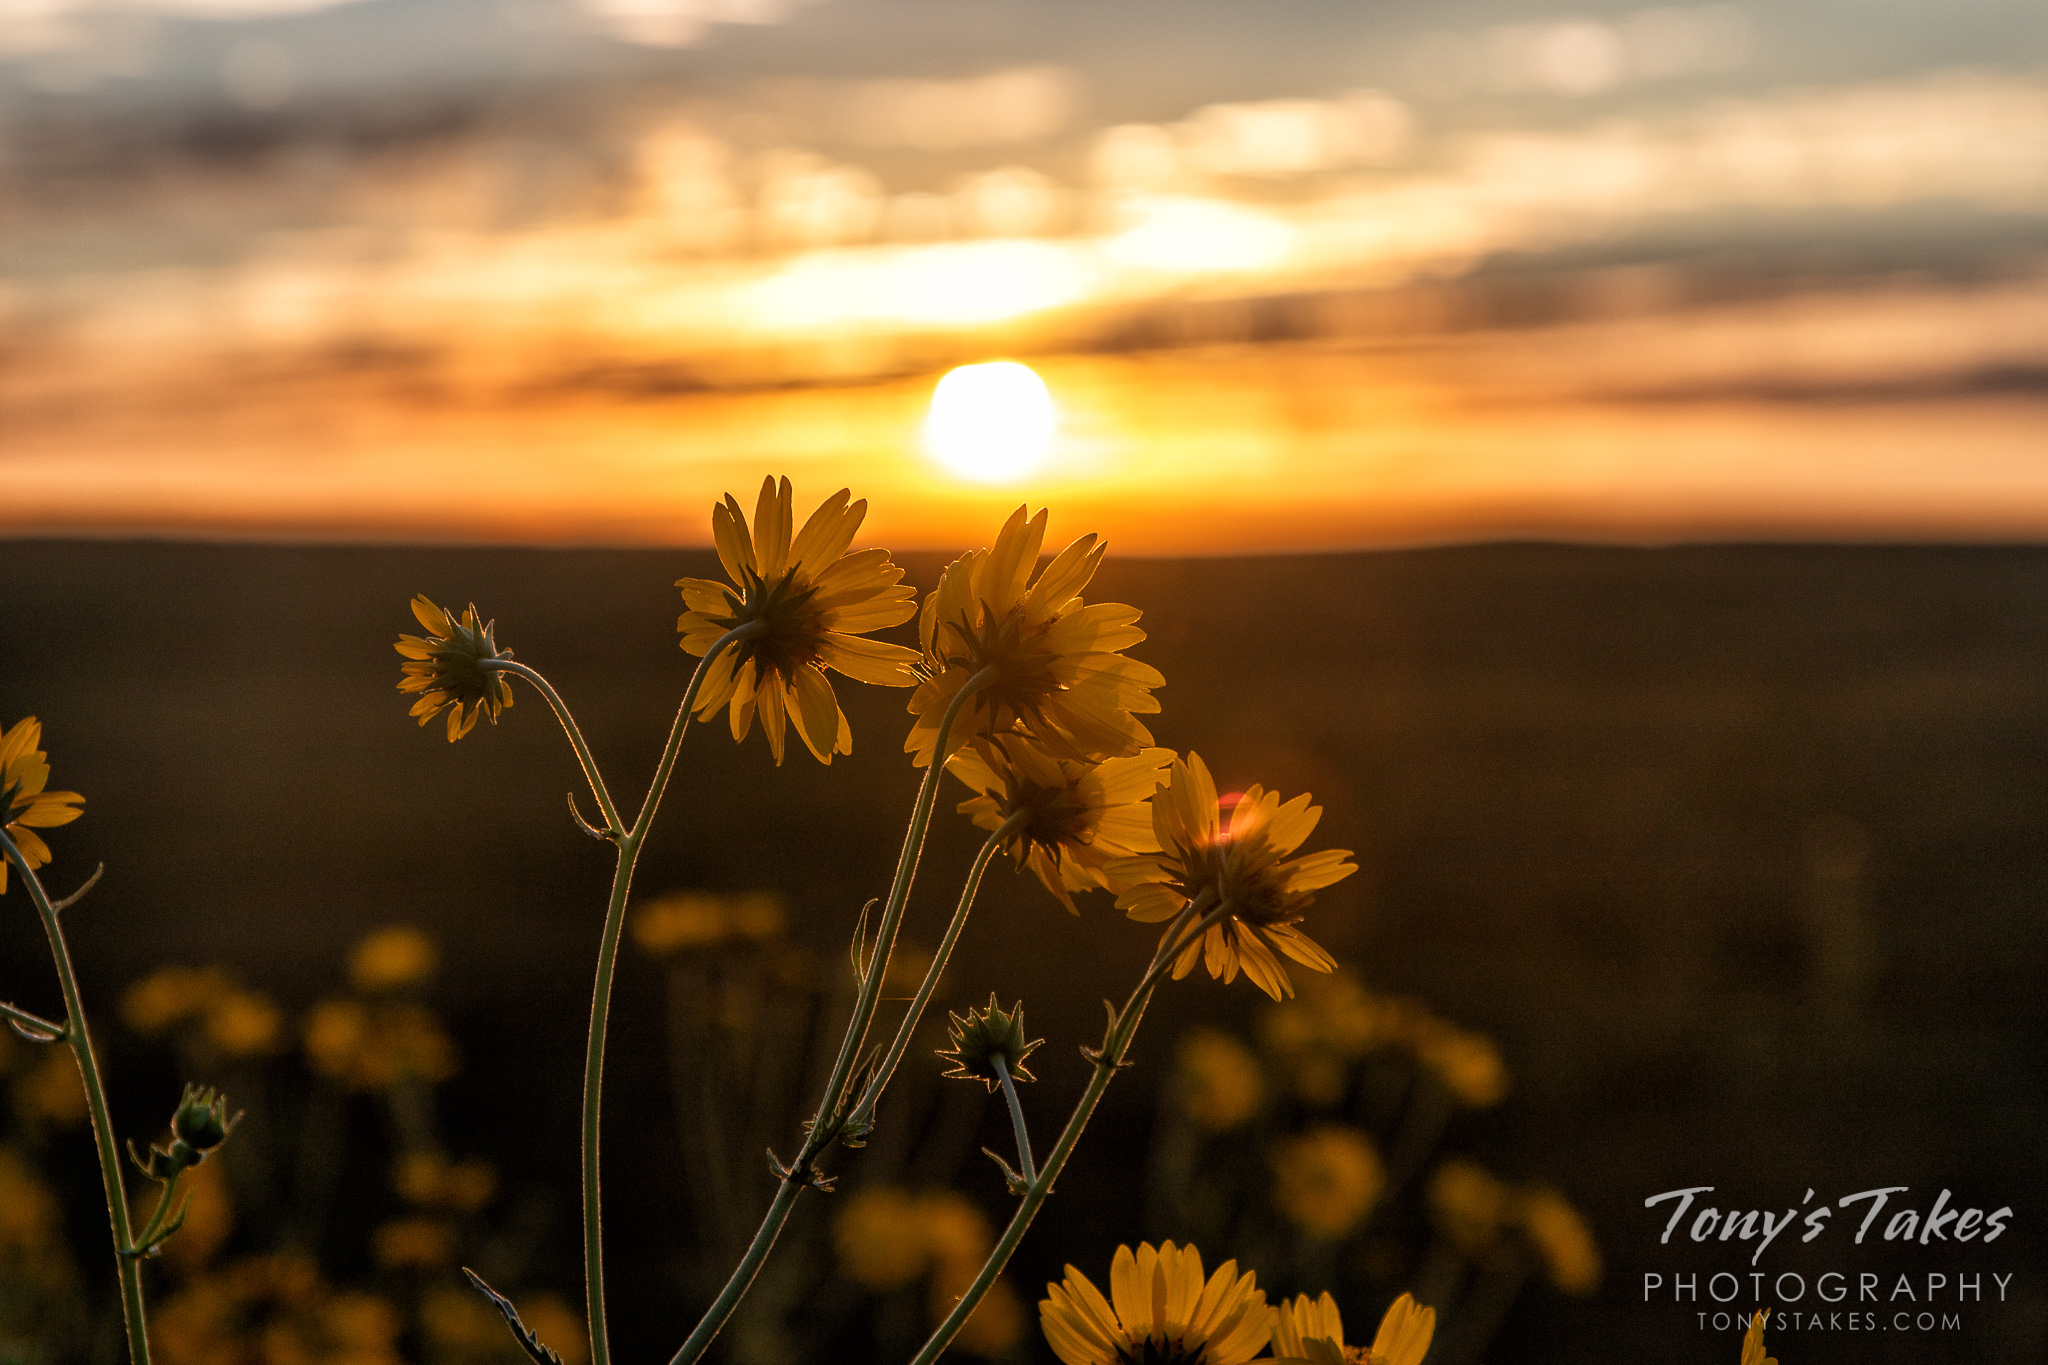 Wild sunflowers greet sunrise on the Colorado plains. (© Tony's Takes)